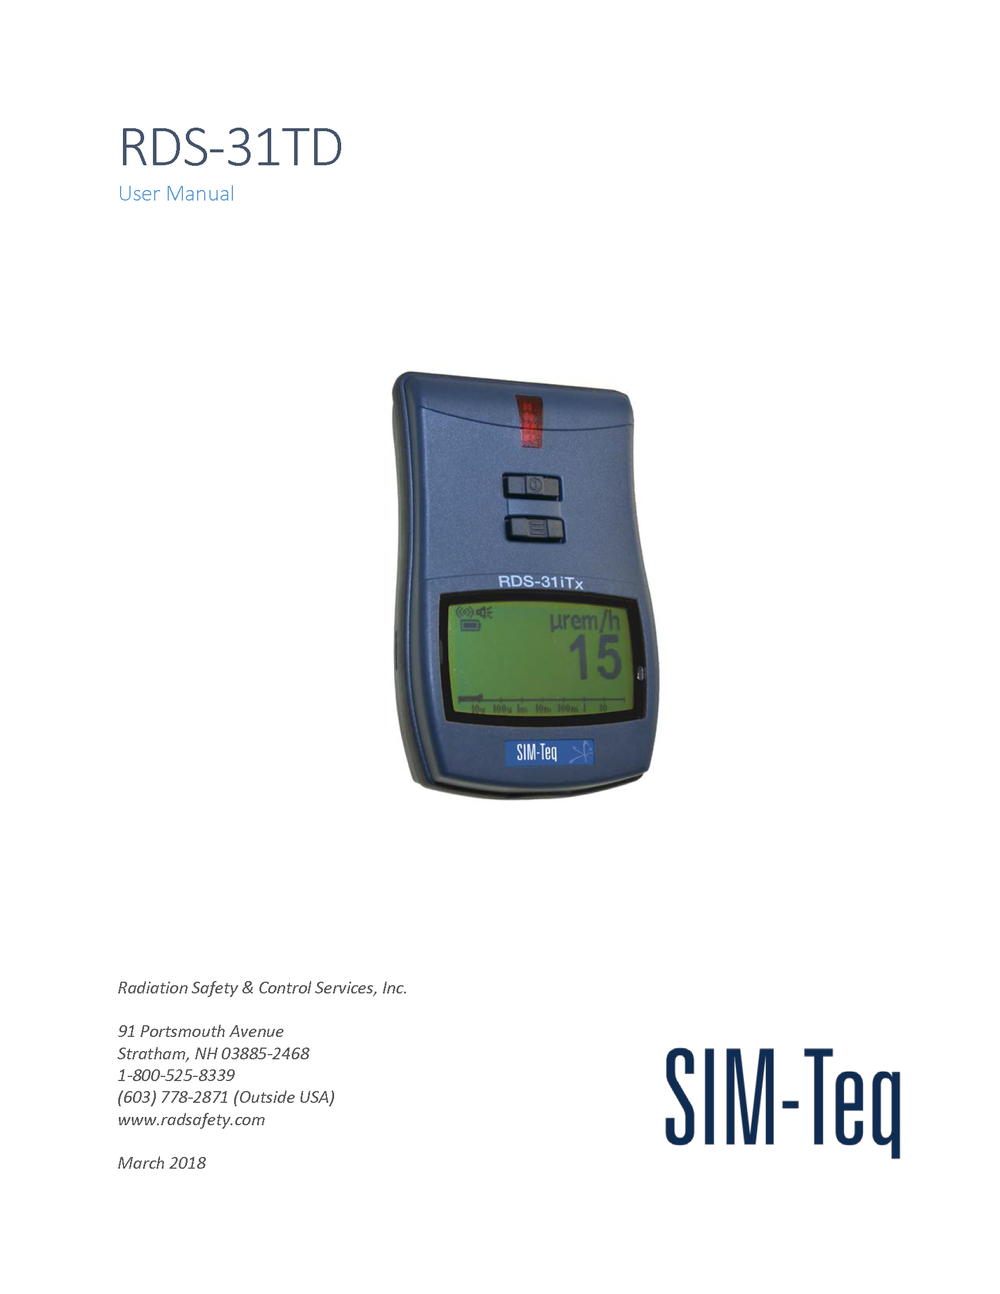 RDS-31TD User Manual